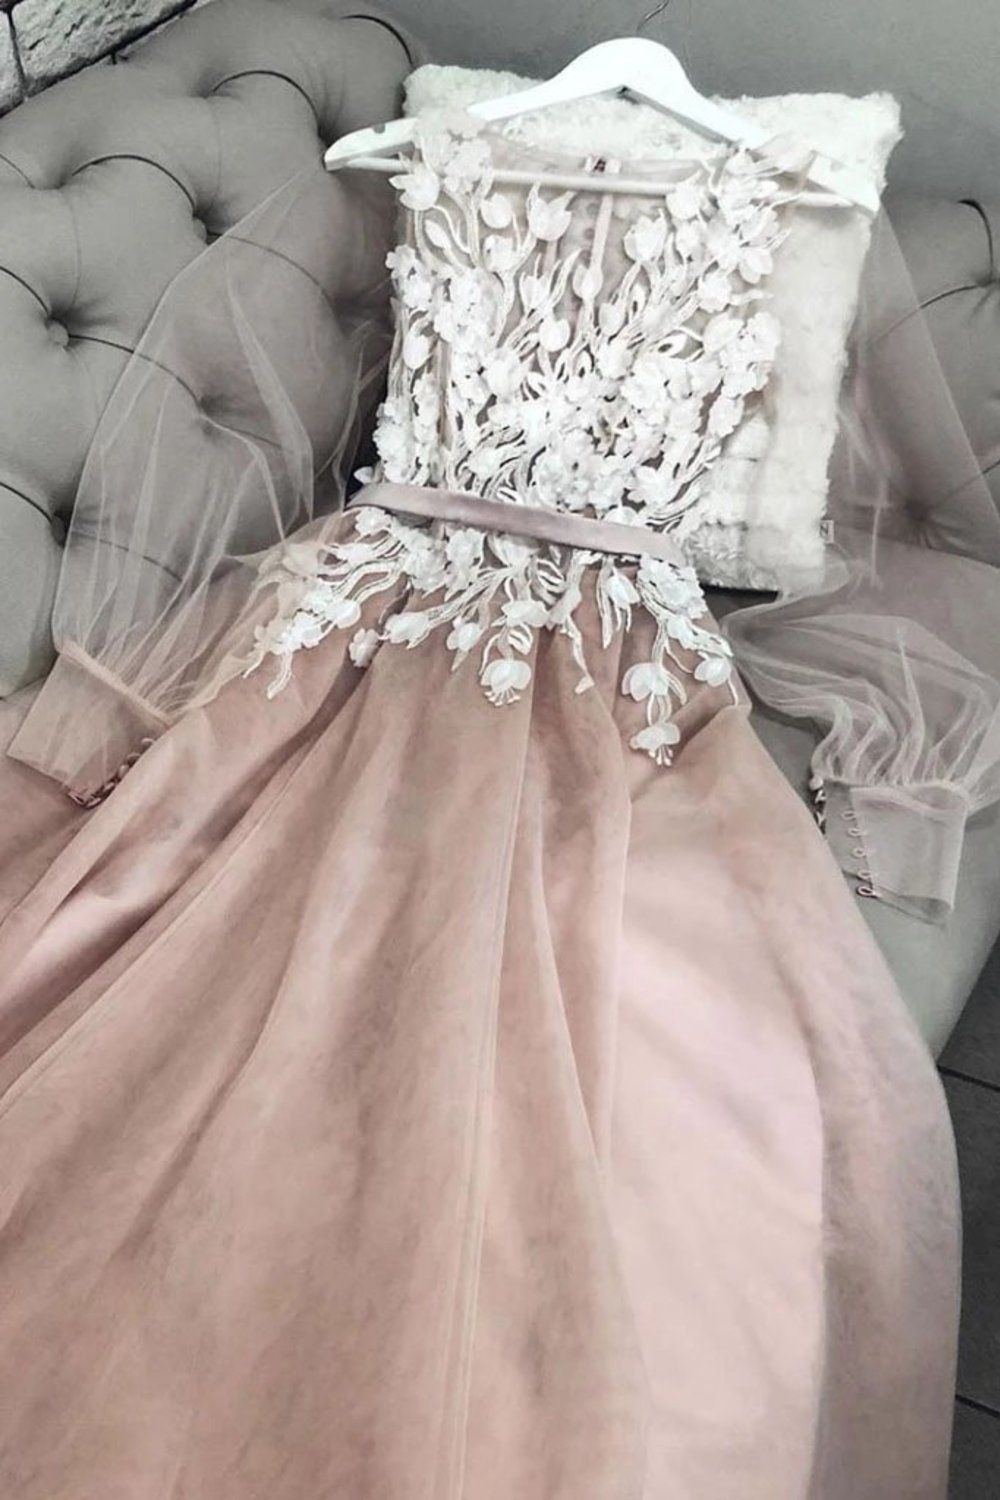 A Line Bateau Long Sleeves Floor Length Prom Dress With Appliques, Charming Formal Dress US$ 179.00 DVPPCPZ6N1B - dresses-vip